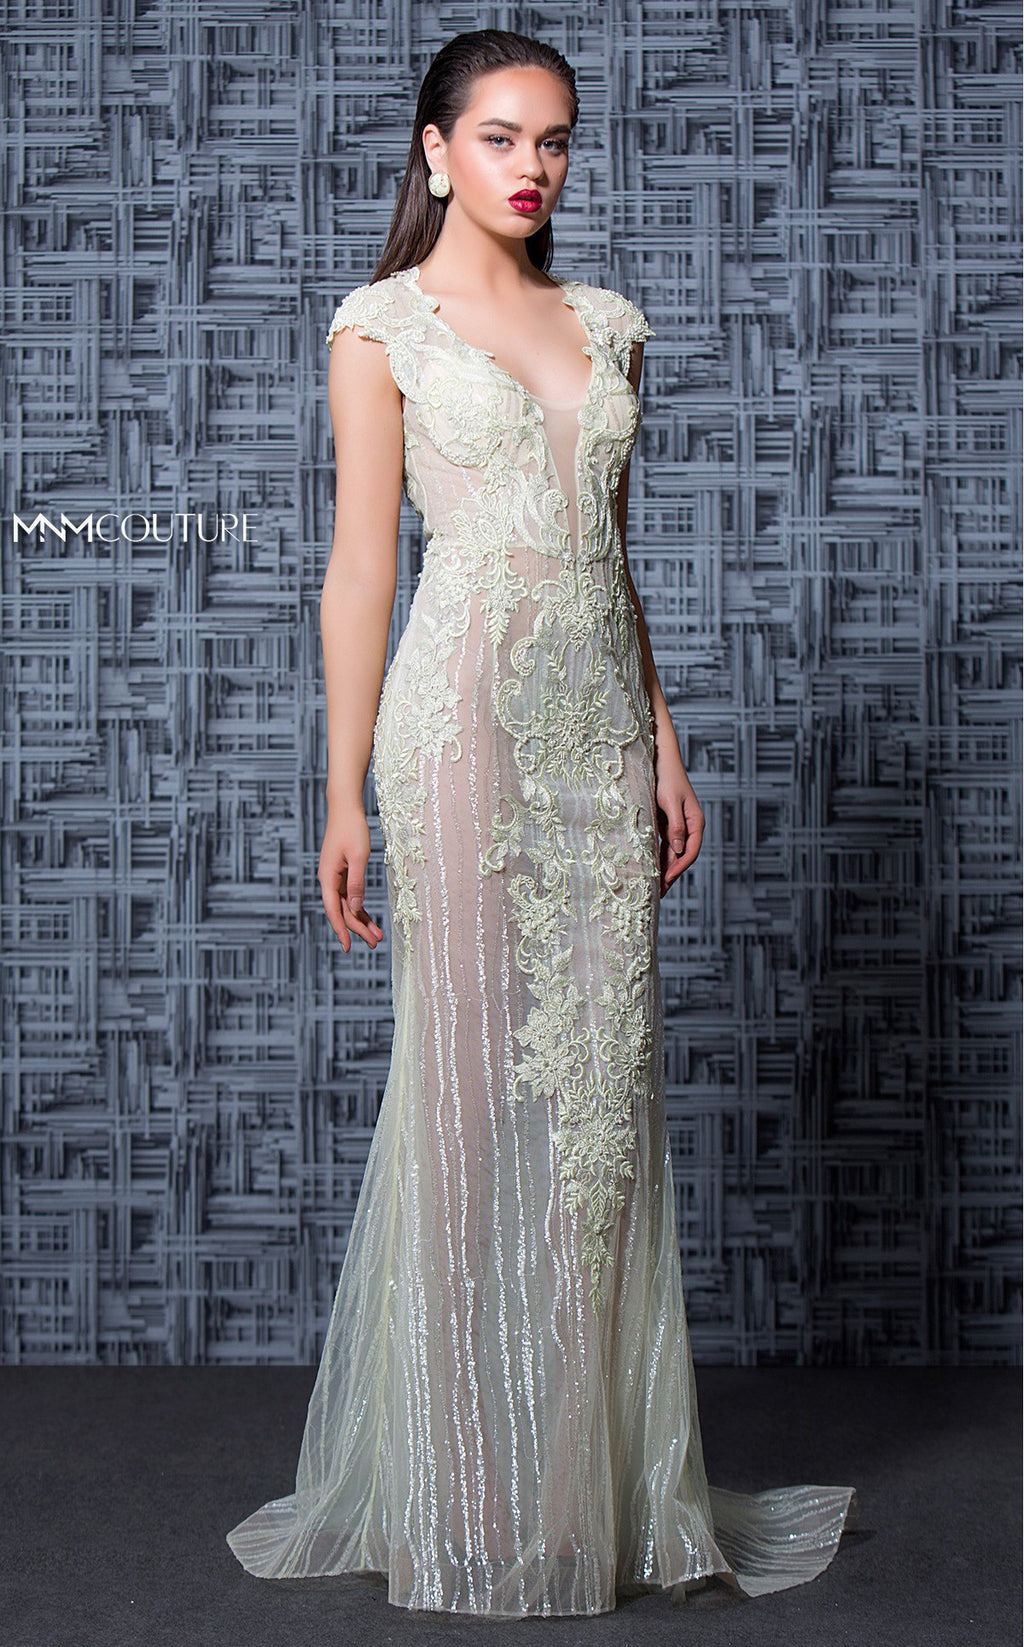 MNM Couture K3600 Evening Dress - CYC Boutique